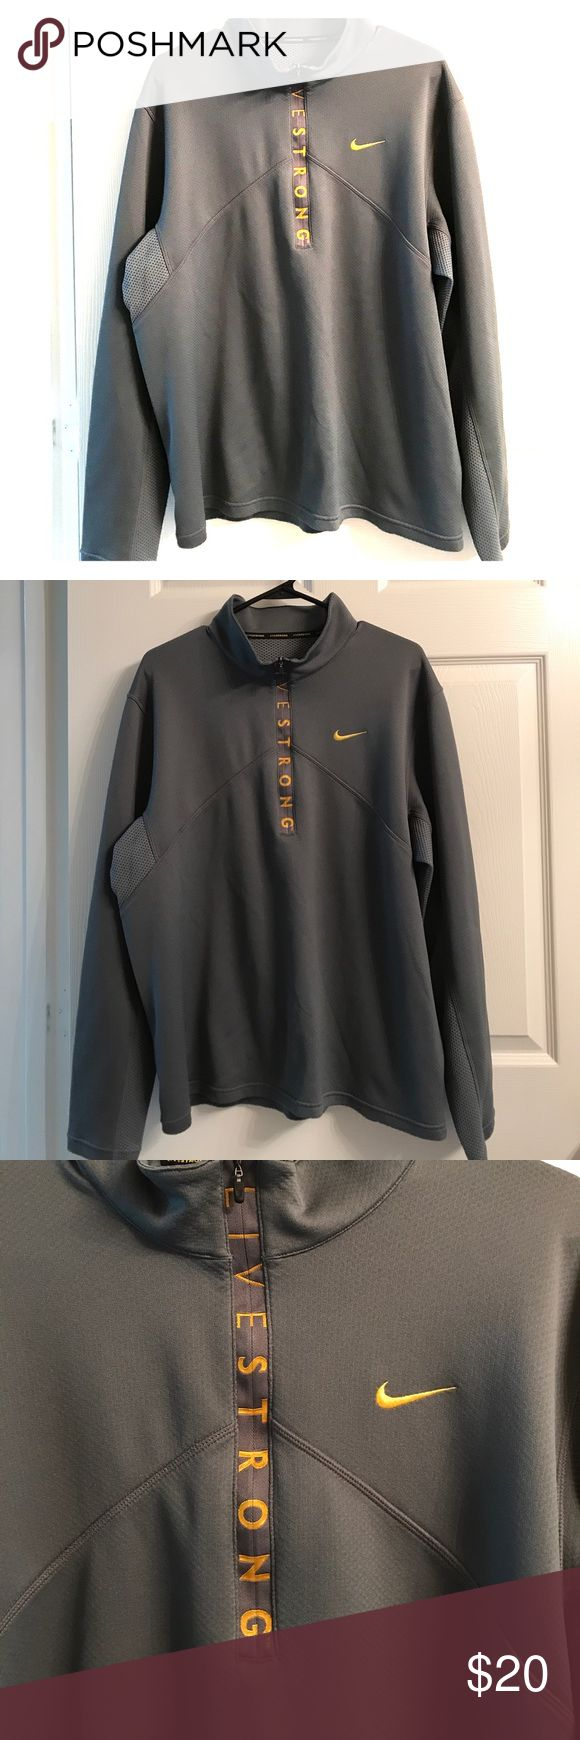 Men's Nike LiveStrong Pullover Gently worn men's Nike LiveStrong half-zip pullover. Has a small pocket on the side that zips. Nike Shirts Tees - Long Sleeve